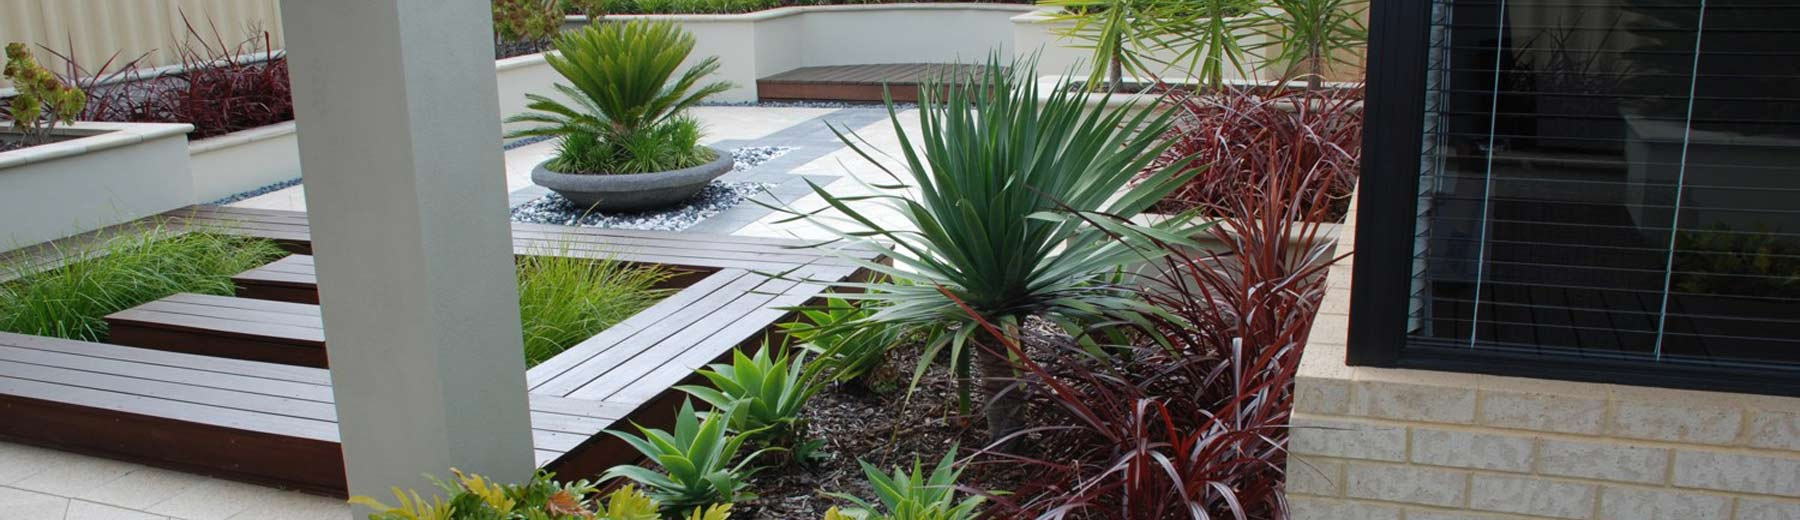 Residential landscaping perth home gardens landscape for Landscape design jobs sydney